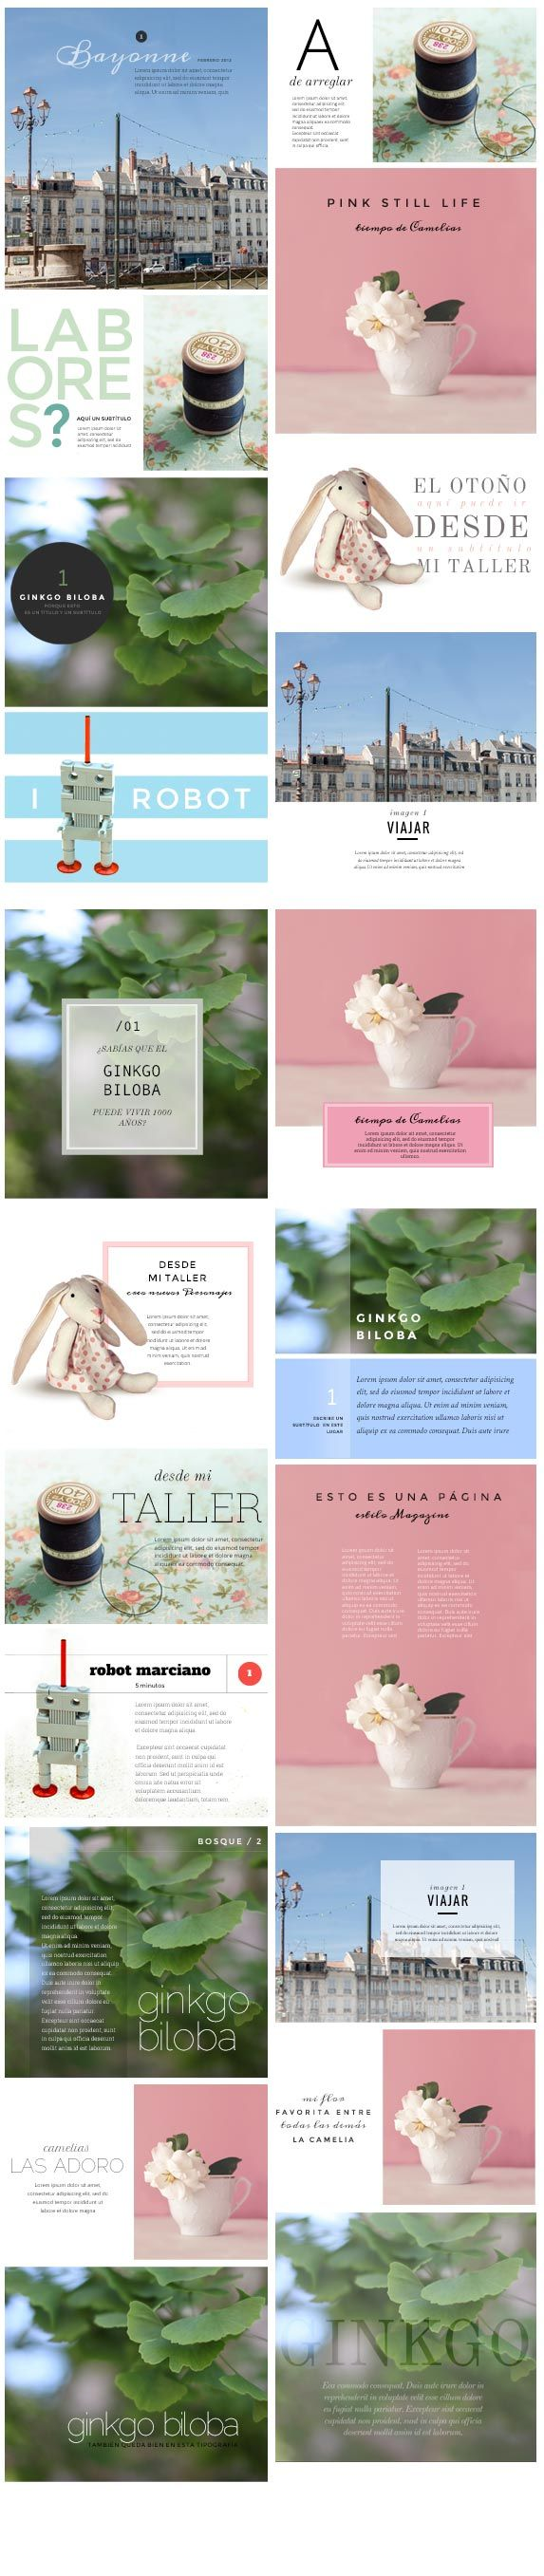 39 best My templates images on Pinterest | Role models, Template ...